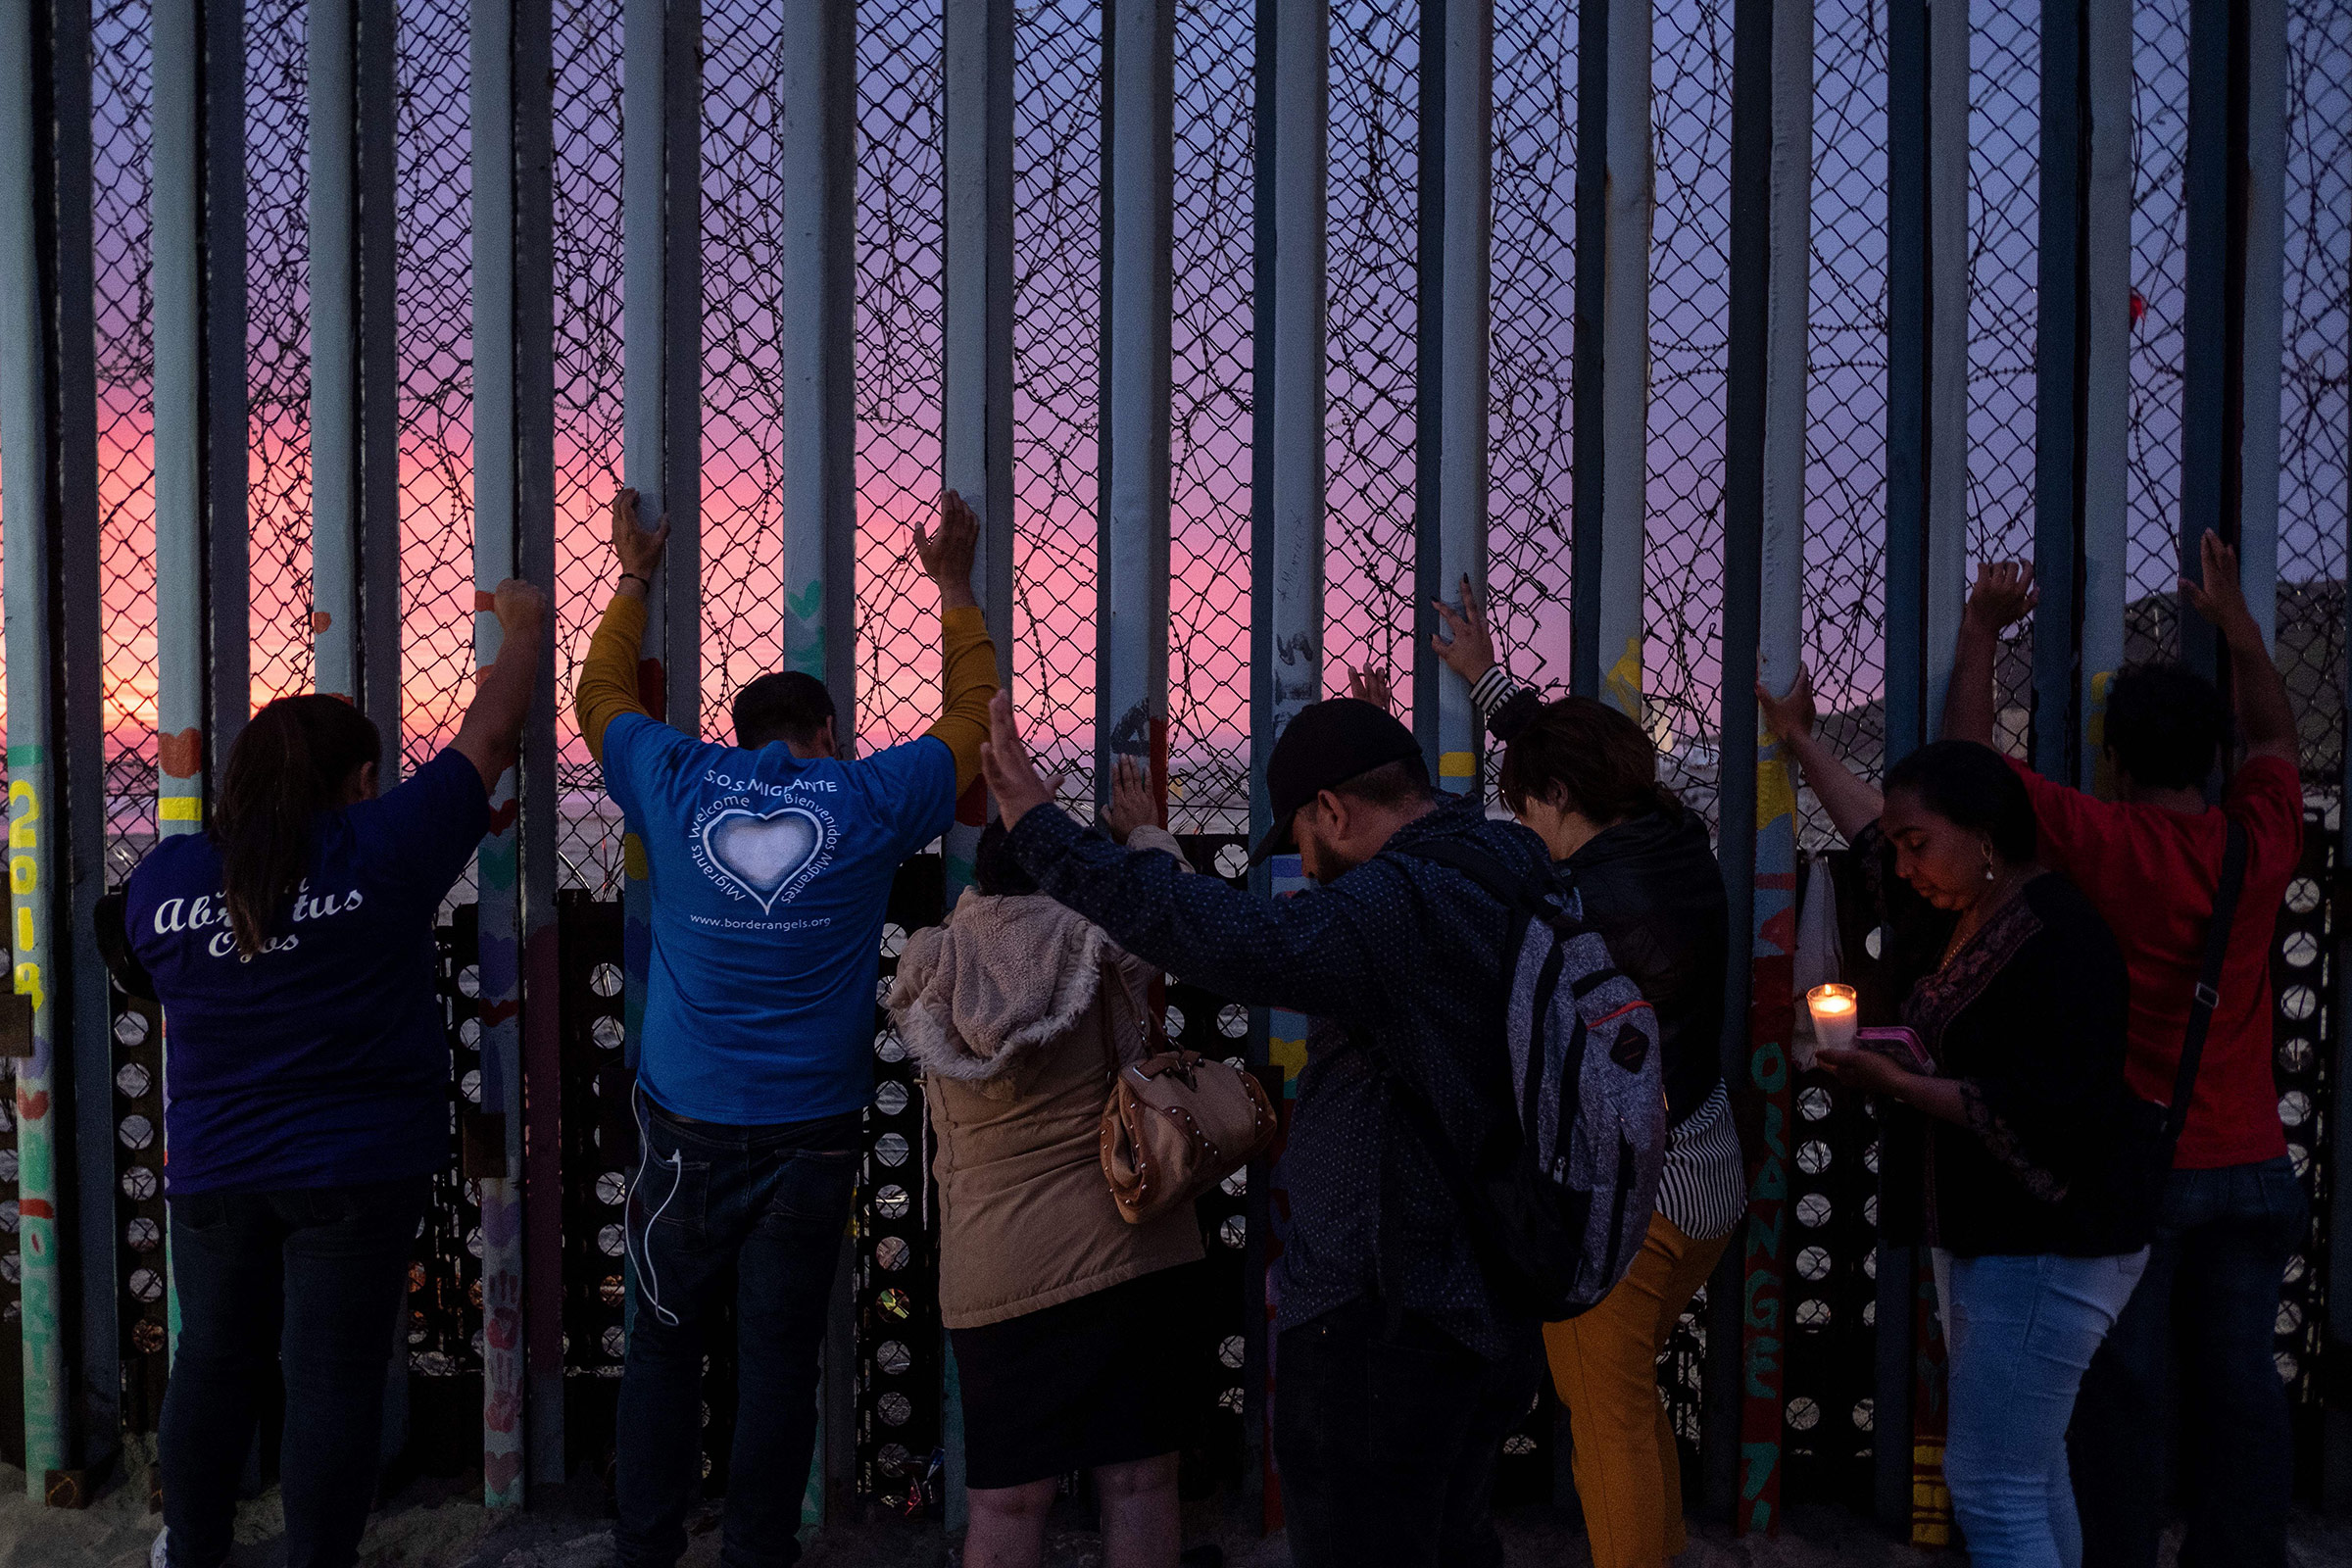 Migrants, advocates and attendees take part in an event called  Clamor for those who didn't achieve the dream  at the U.S.-Mexico border in Playas de Tijuana, Baja California state, Mexico, on June 29, 2019.